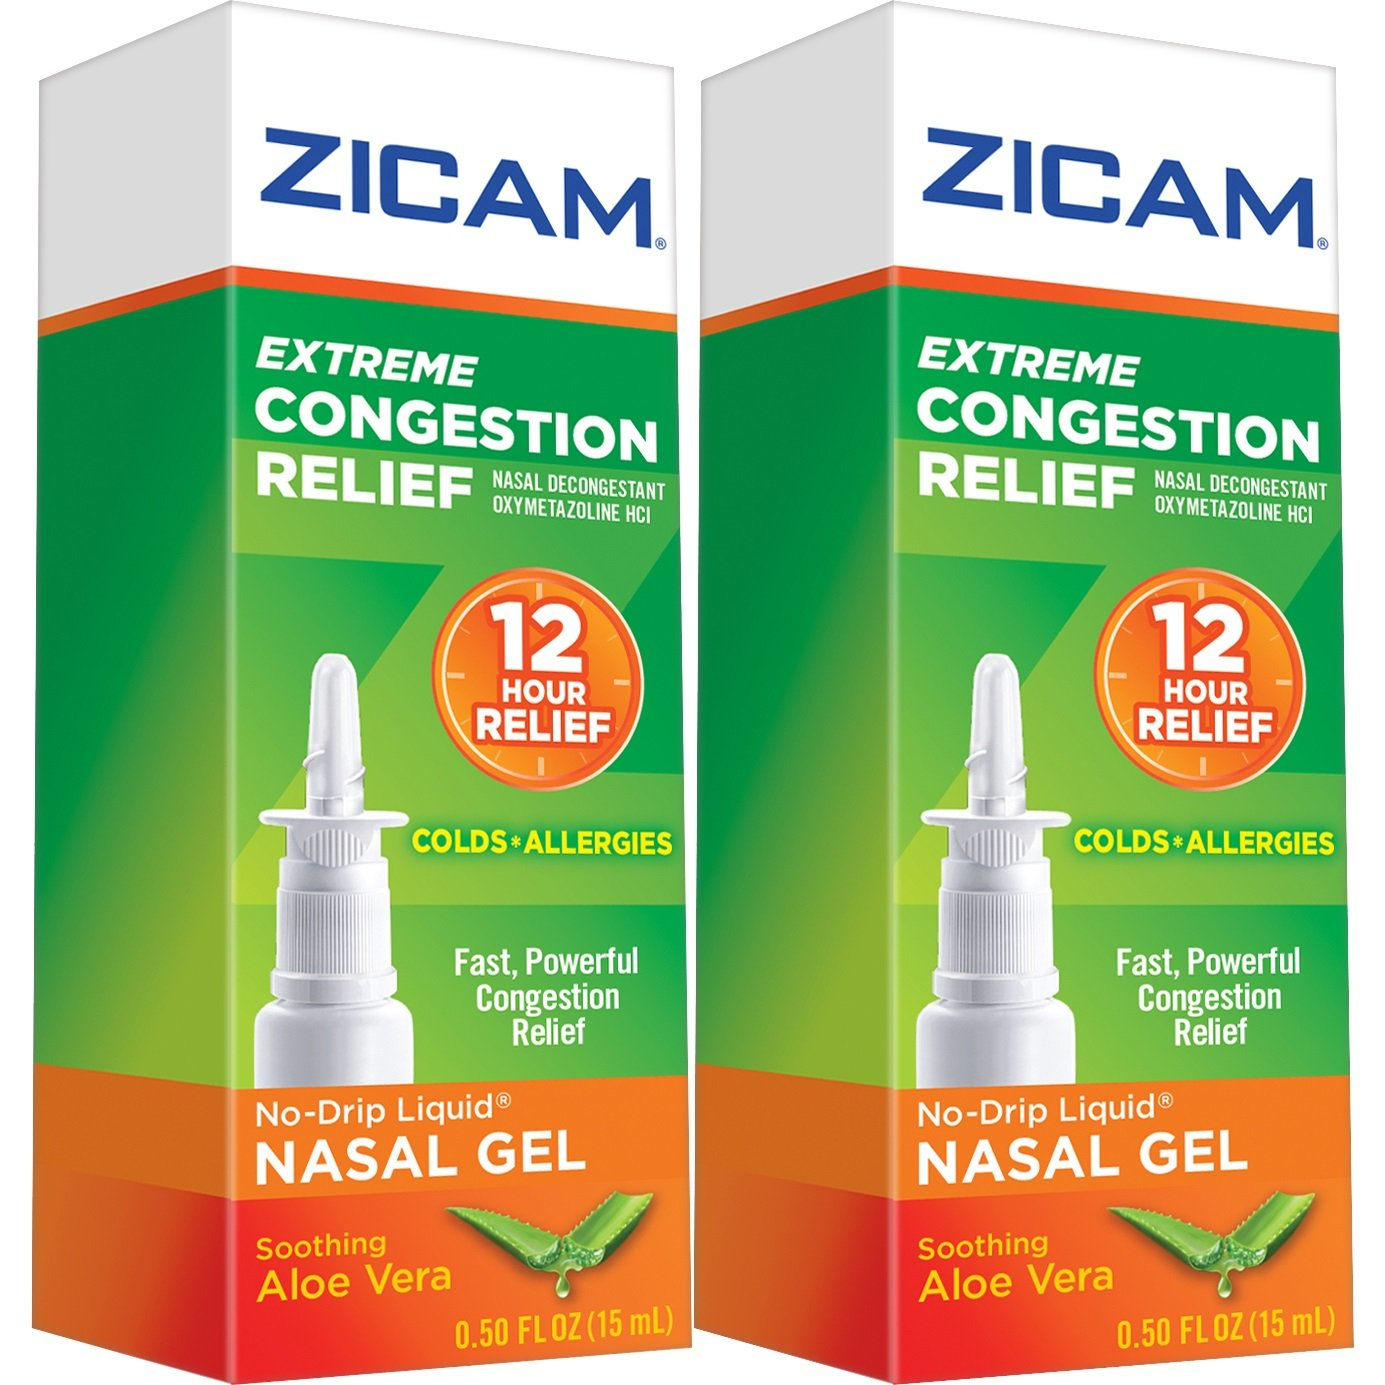 Zicam Extreme Congestion Relief Nasal Spray, 0.5oz. Bottles (Pack of 2), Fast Powerful Relief for Nasal Congestion from Colds or Allergies